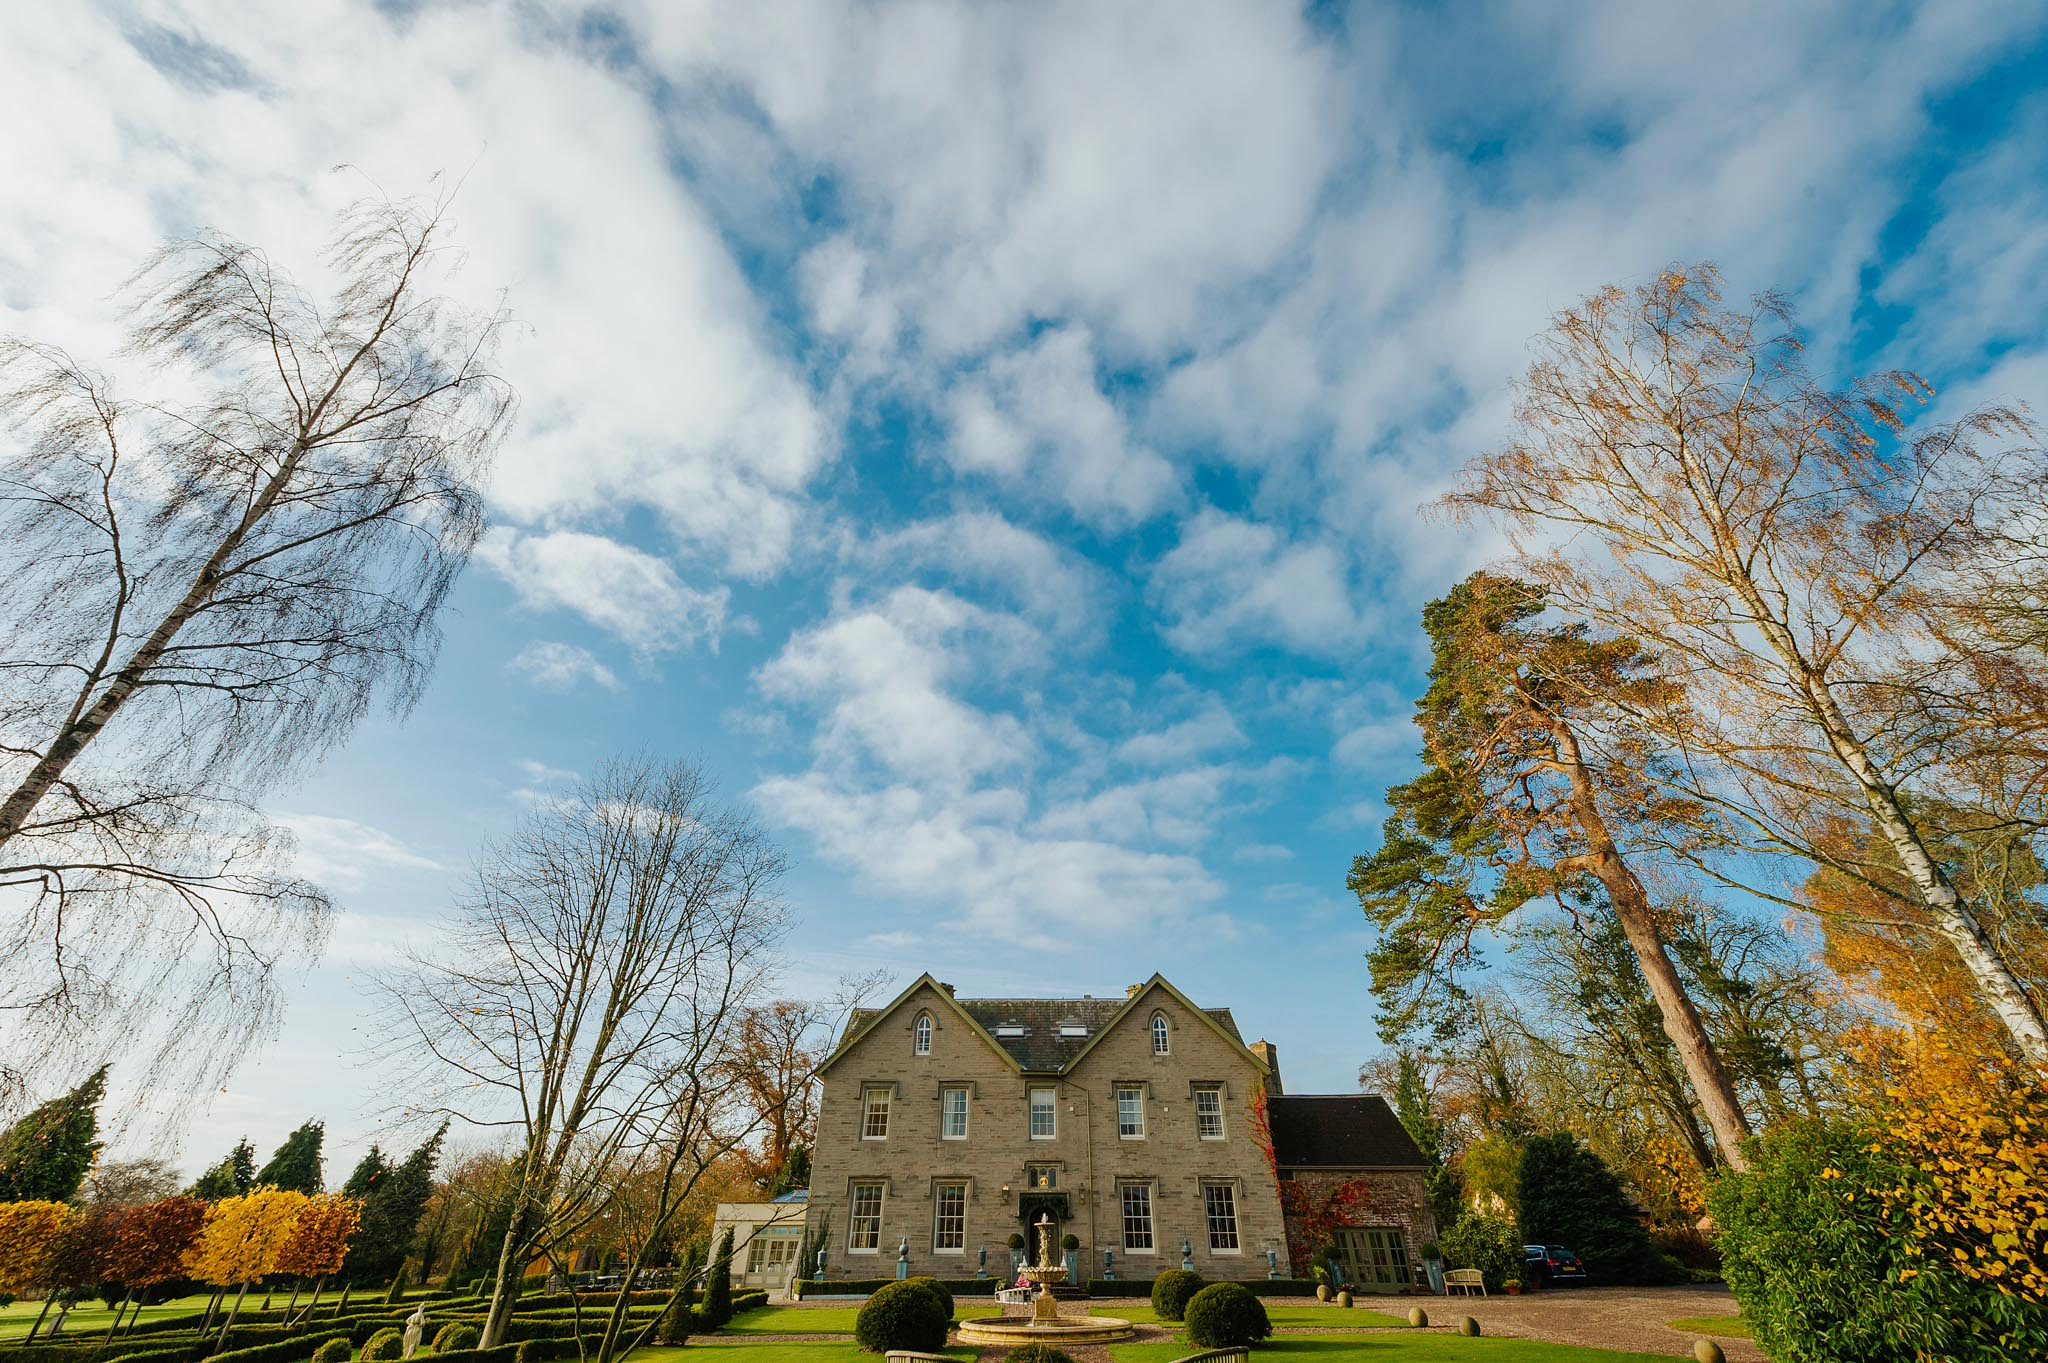 Lemore Manor wedding, Herefordshire - West Midlands | Sadie + Ken 1